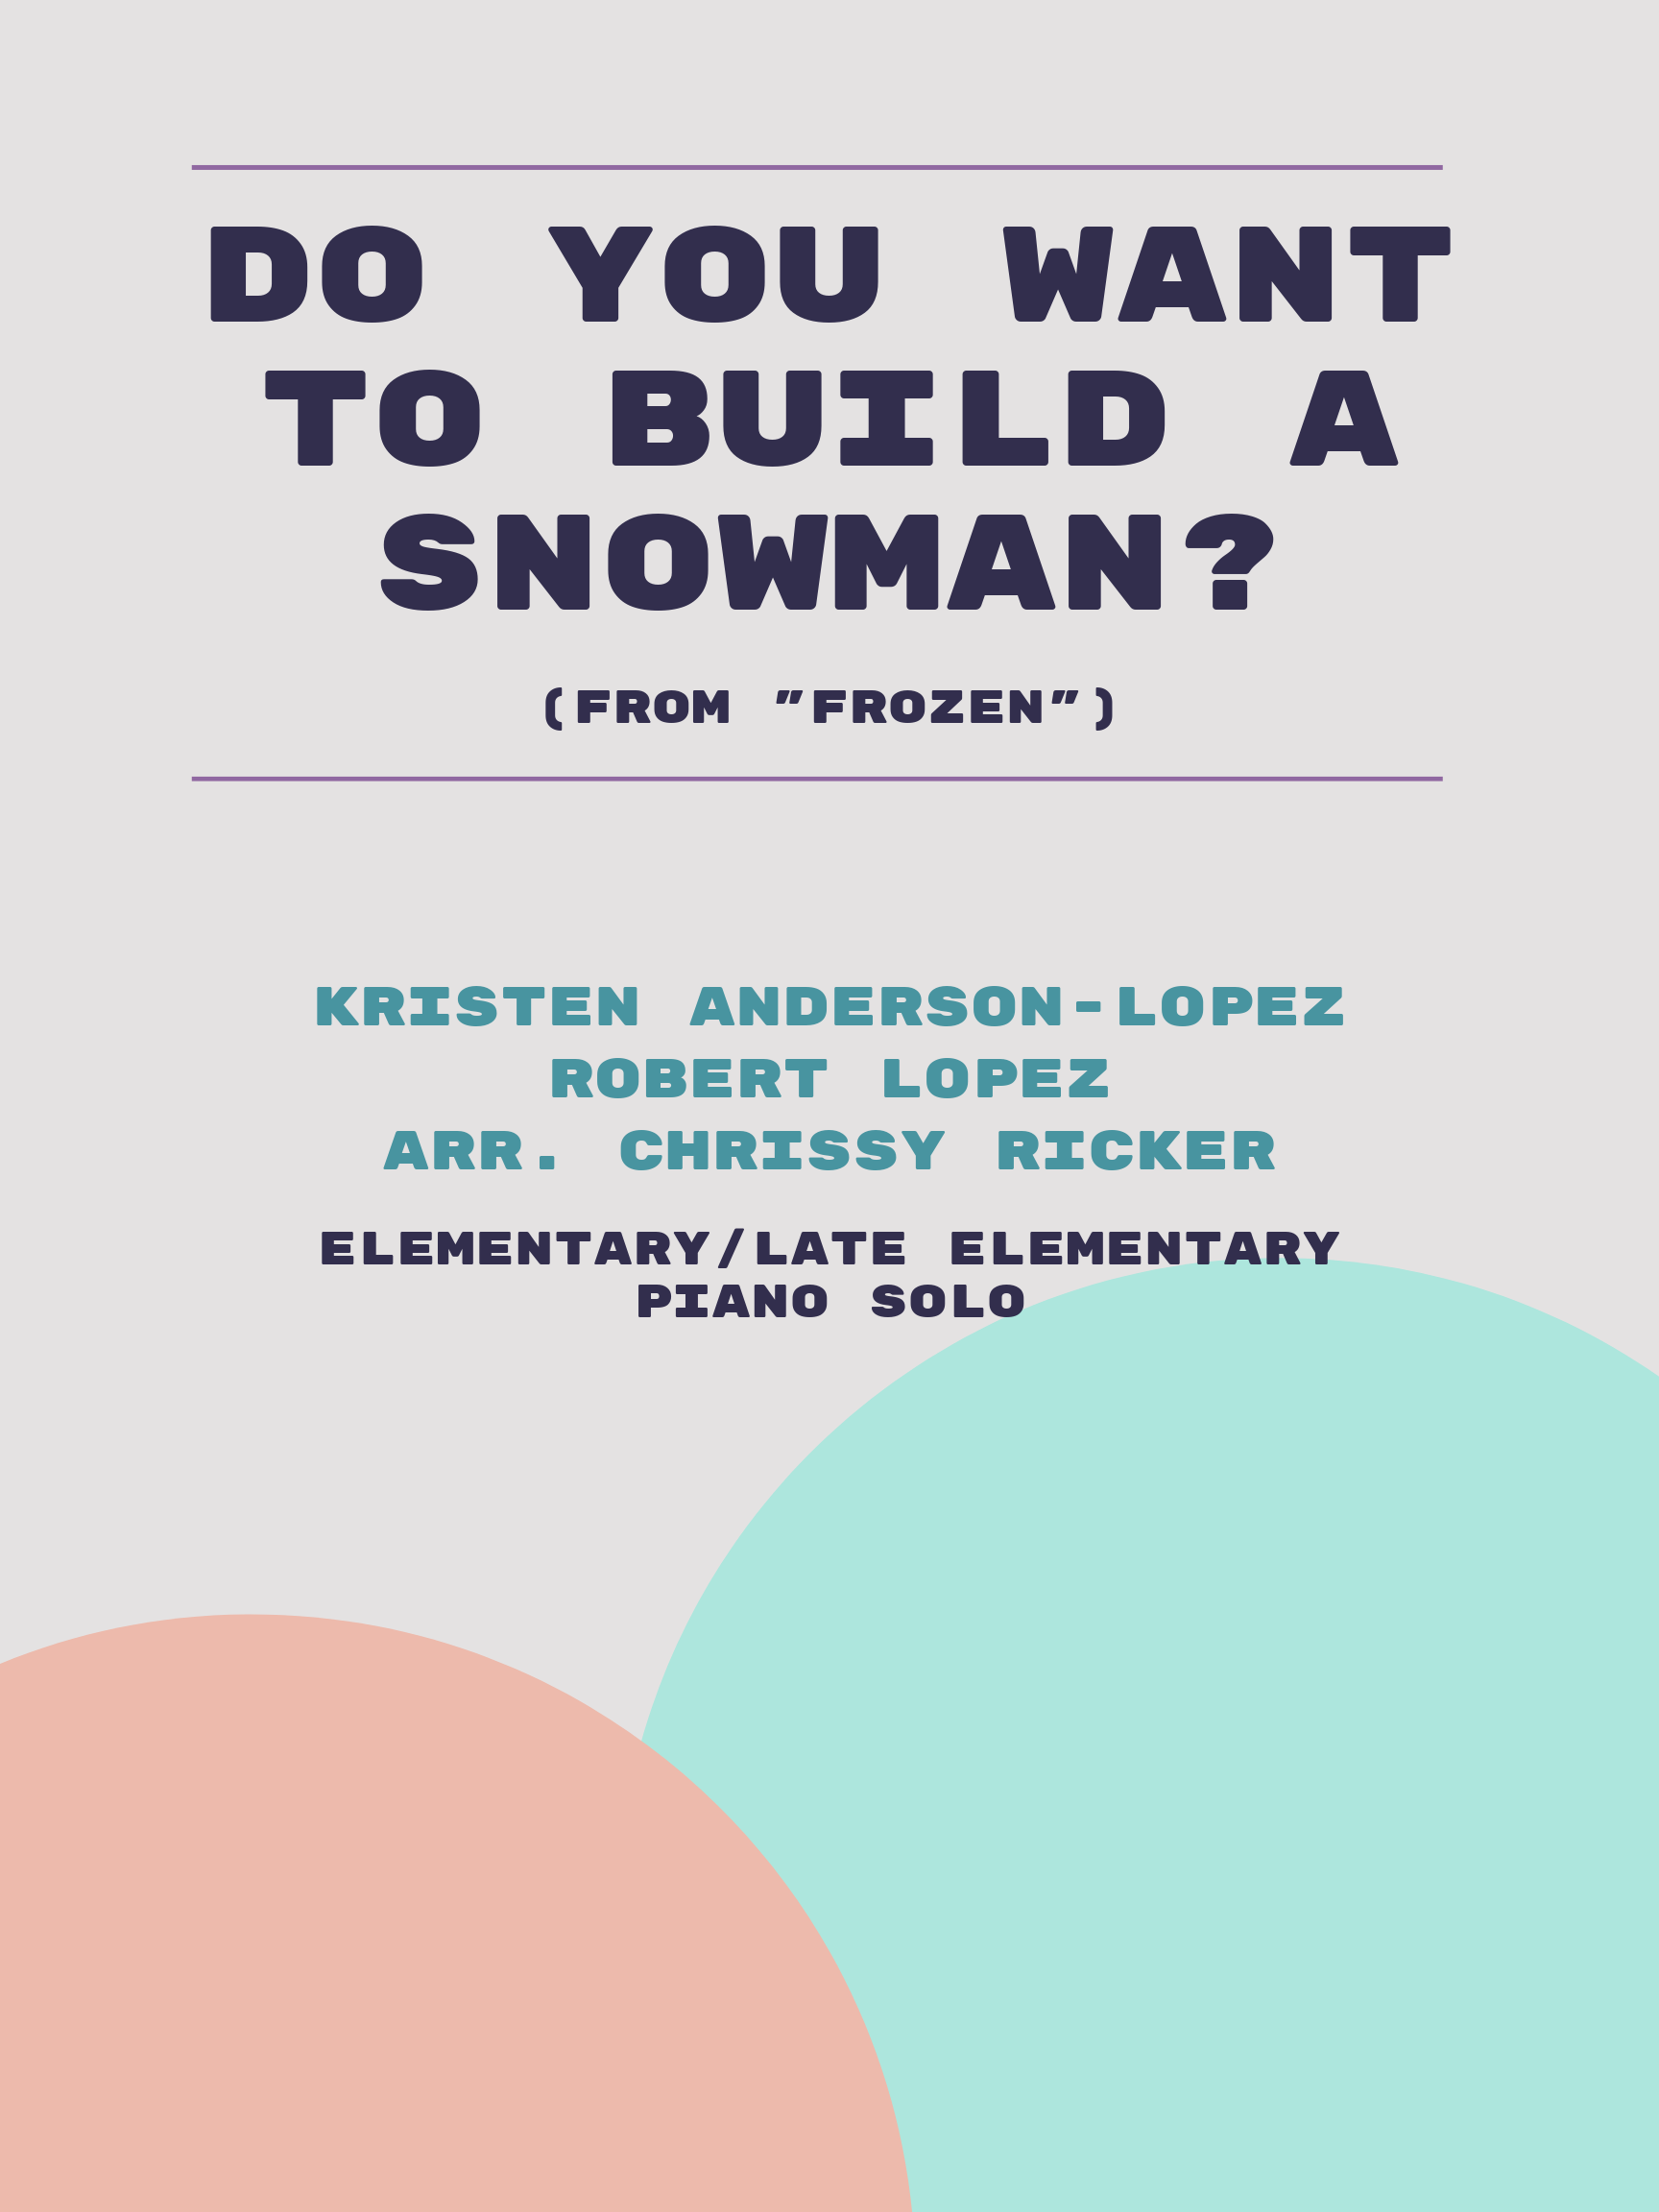 Do You Want to Build a Snowman? by Kristen Anderson-Lopez, Robert Lopez